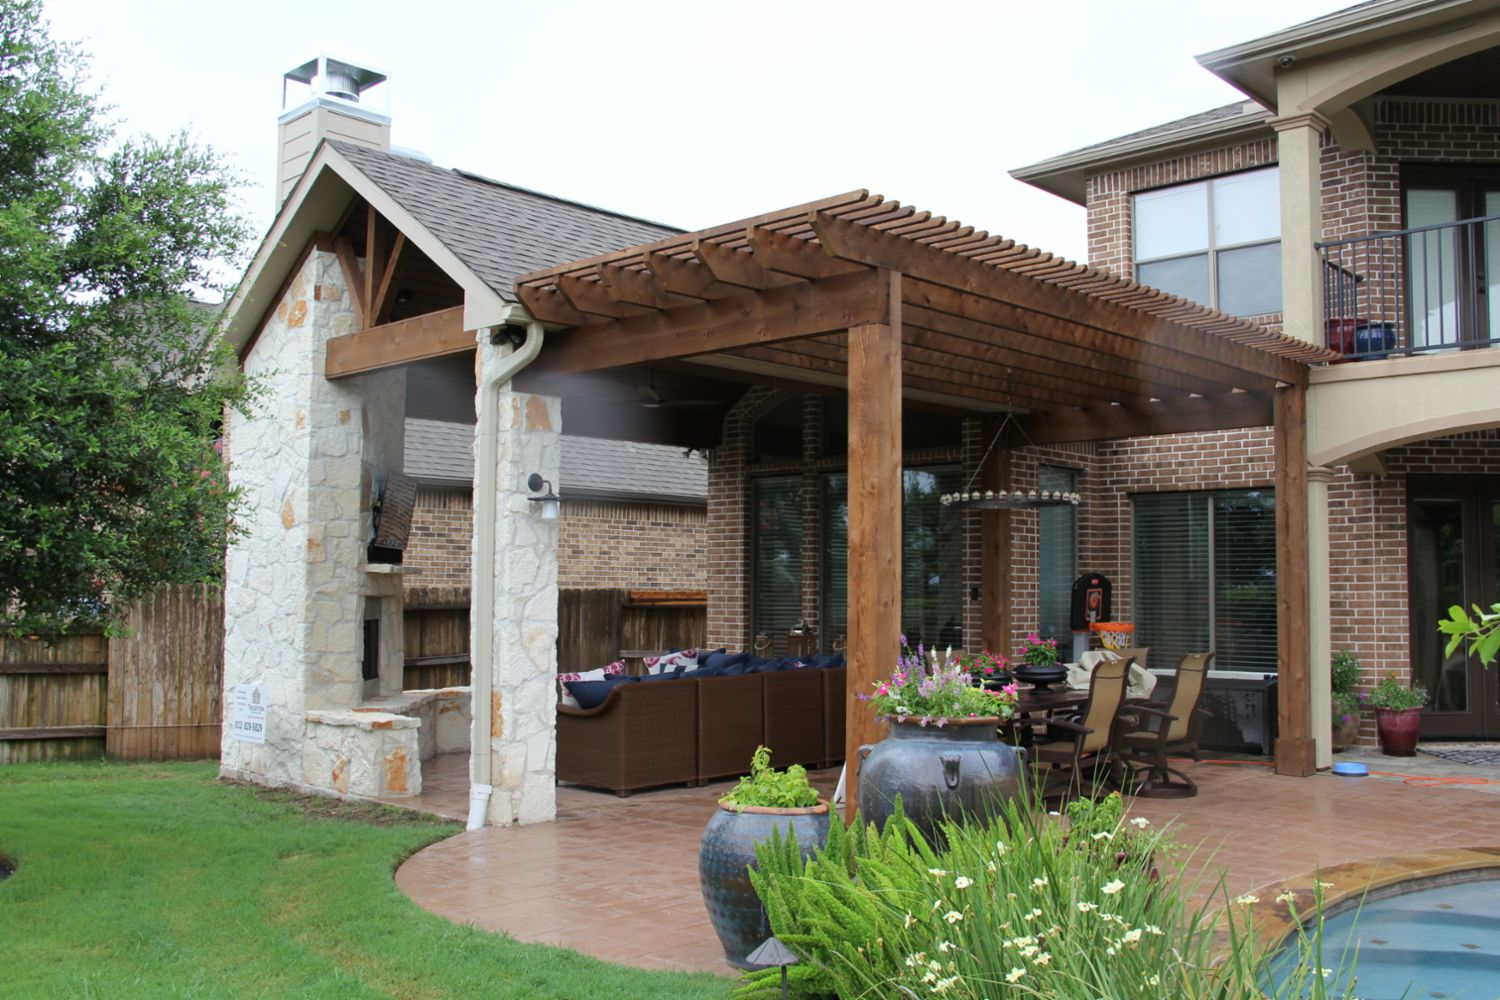 Patio covers outdoor kitchens fire features in katy tx for Outside living